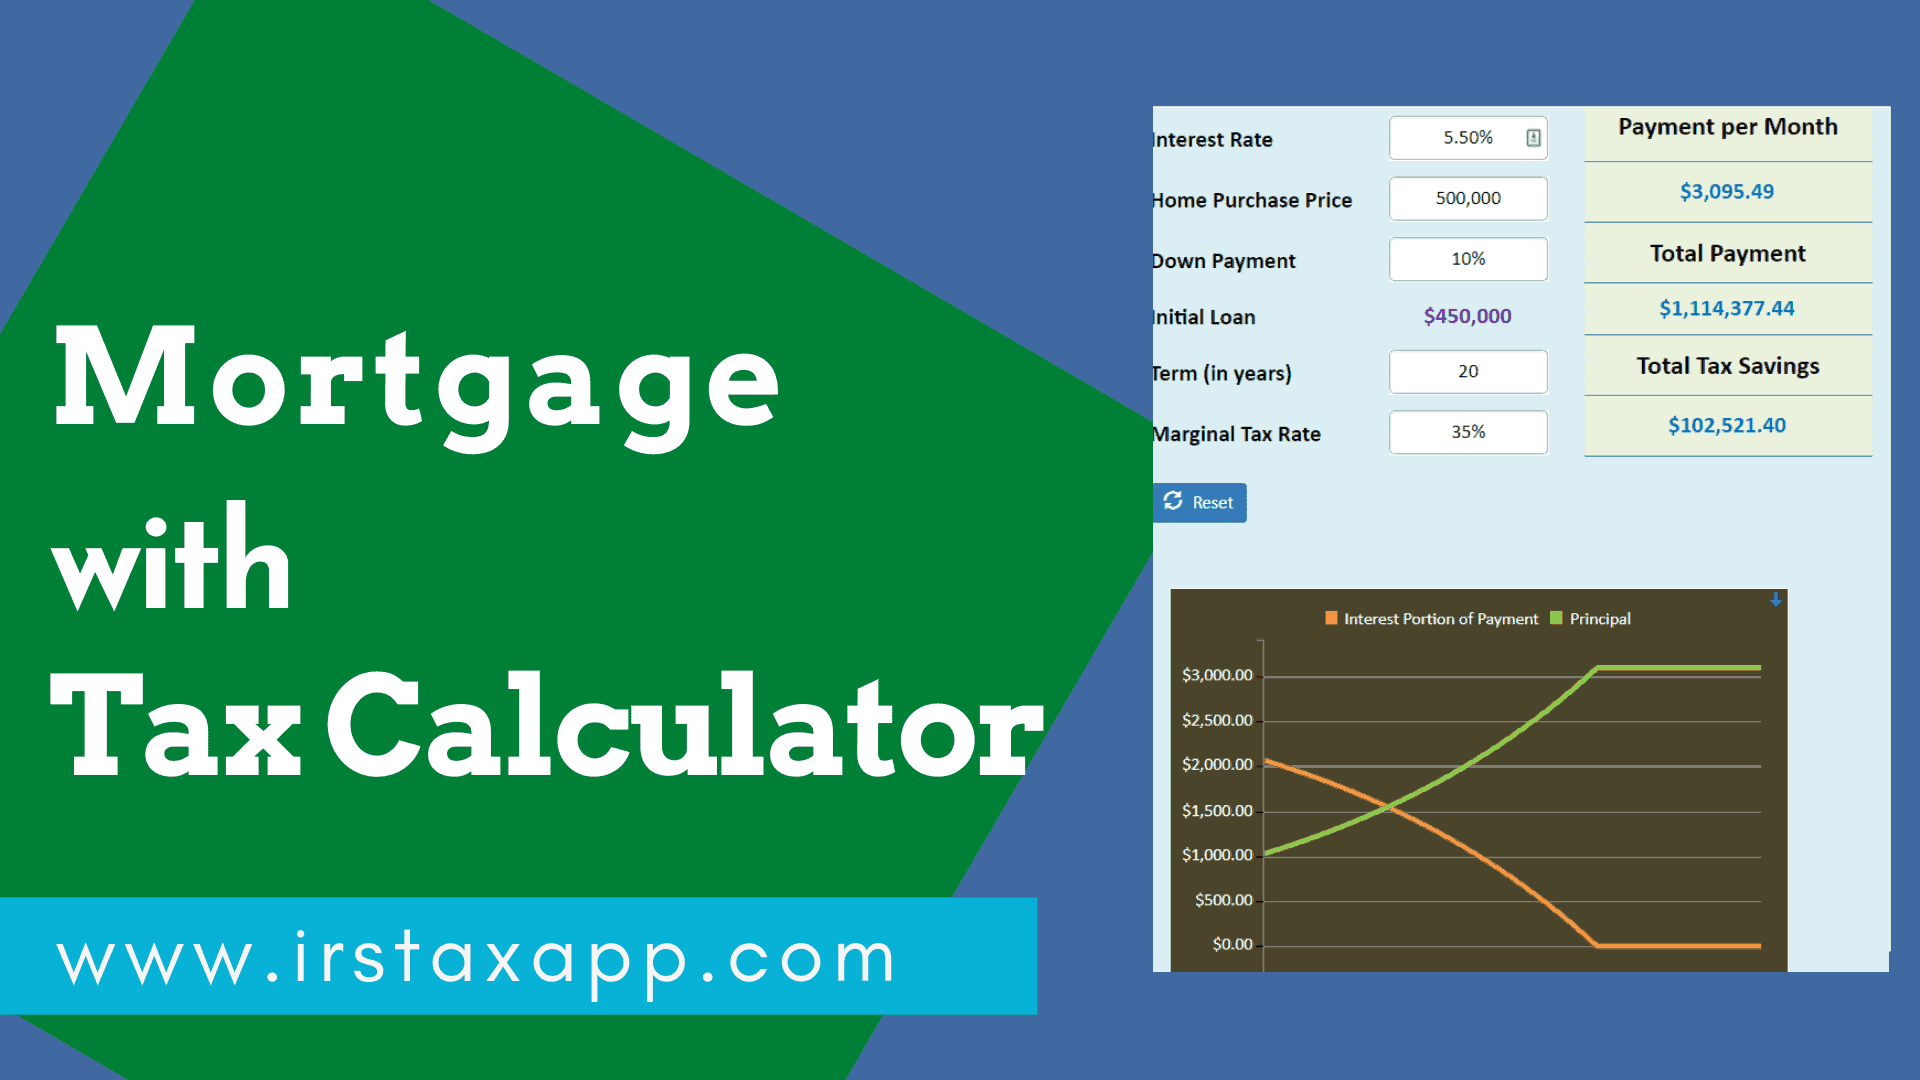 mortgage with tax Calculator